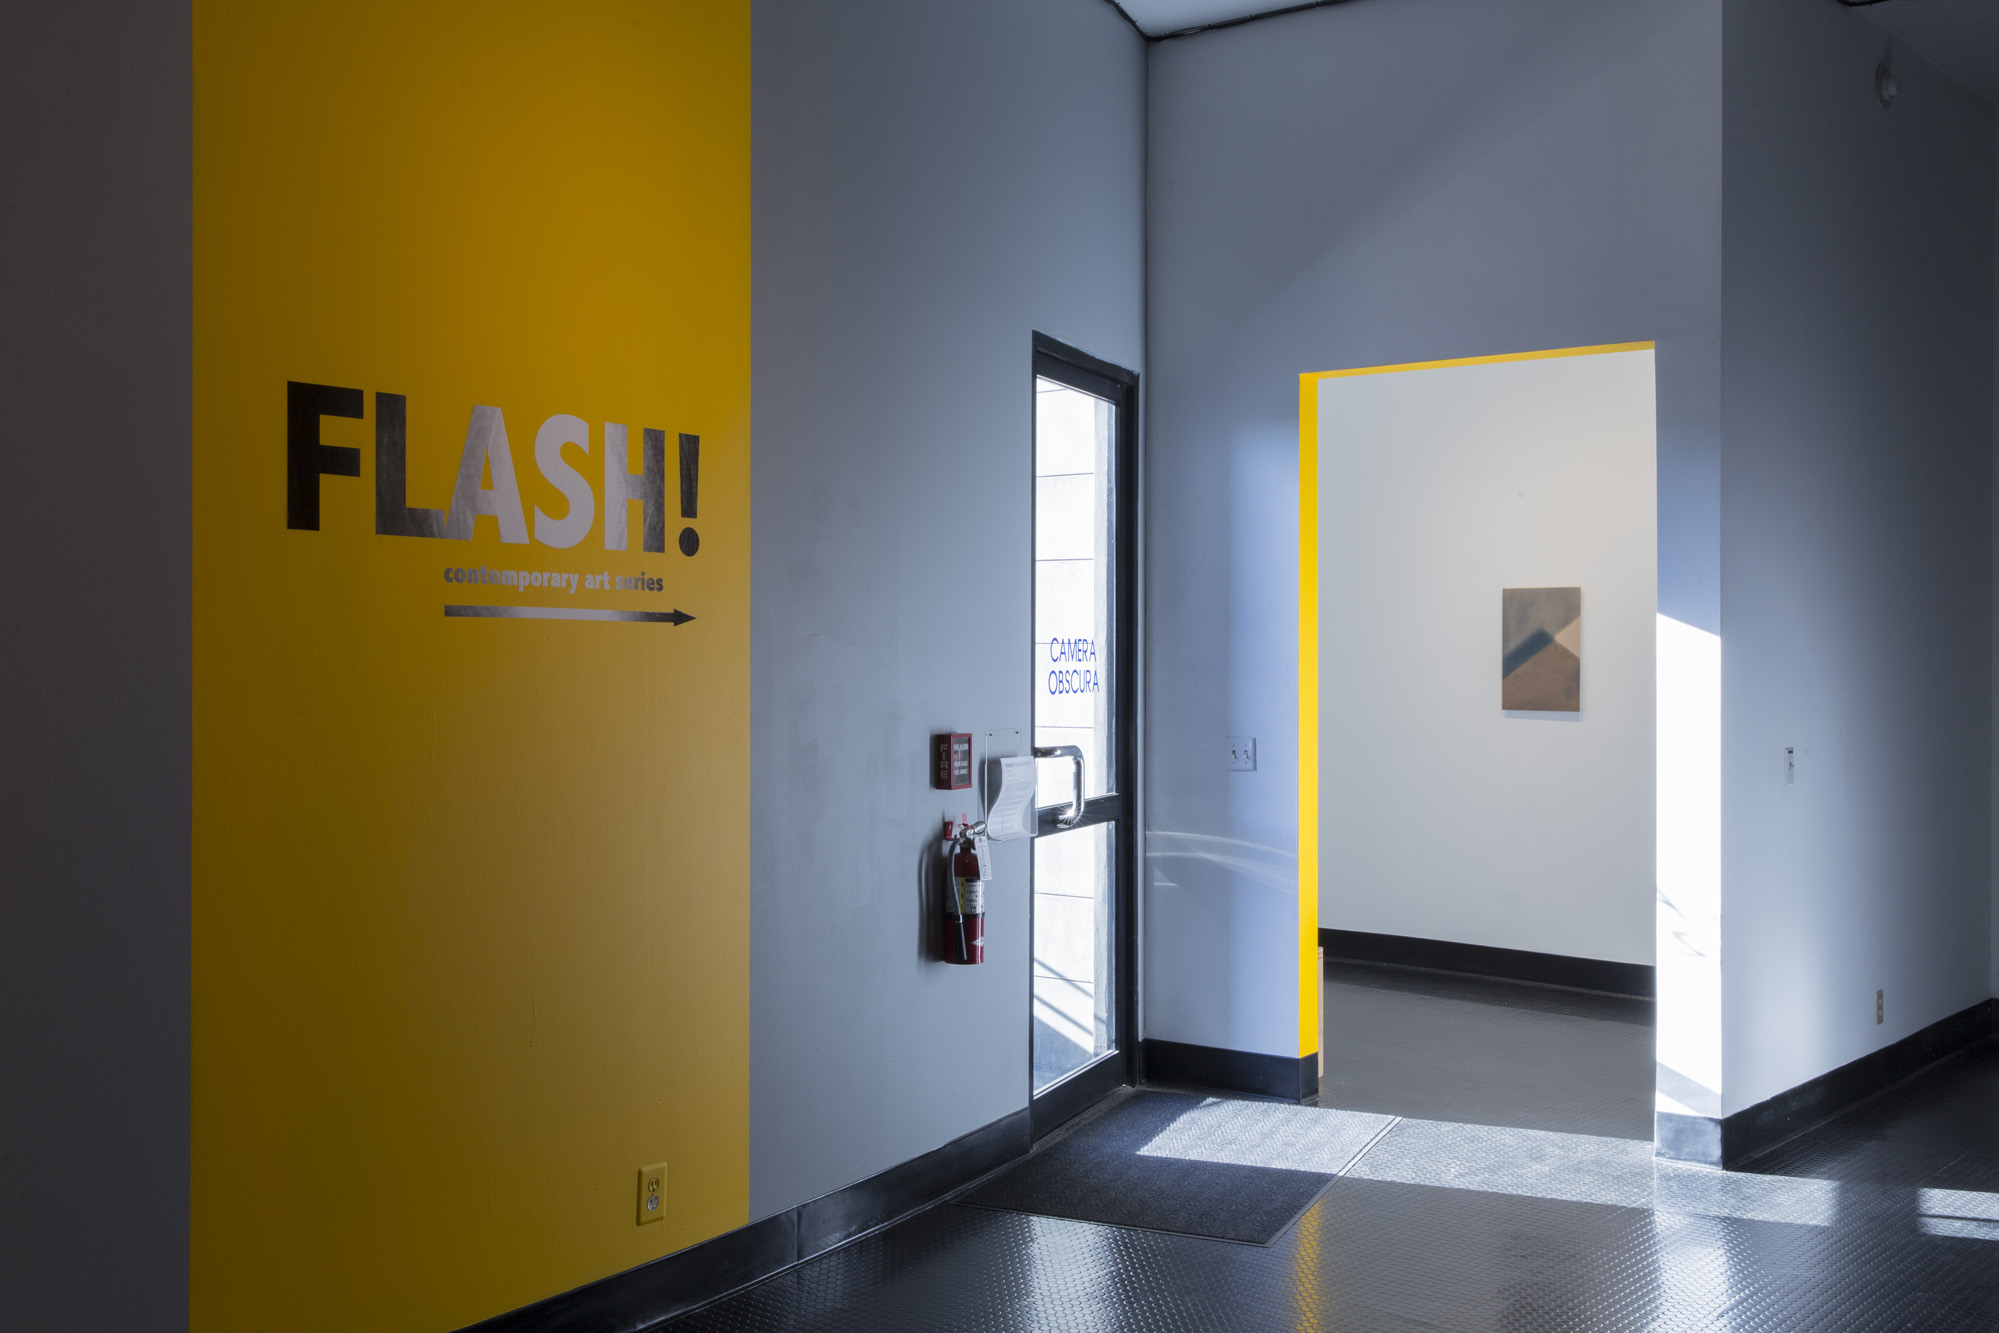 FLASH! contemporary art series